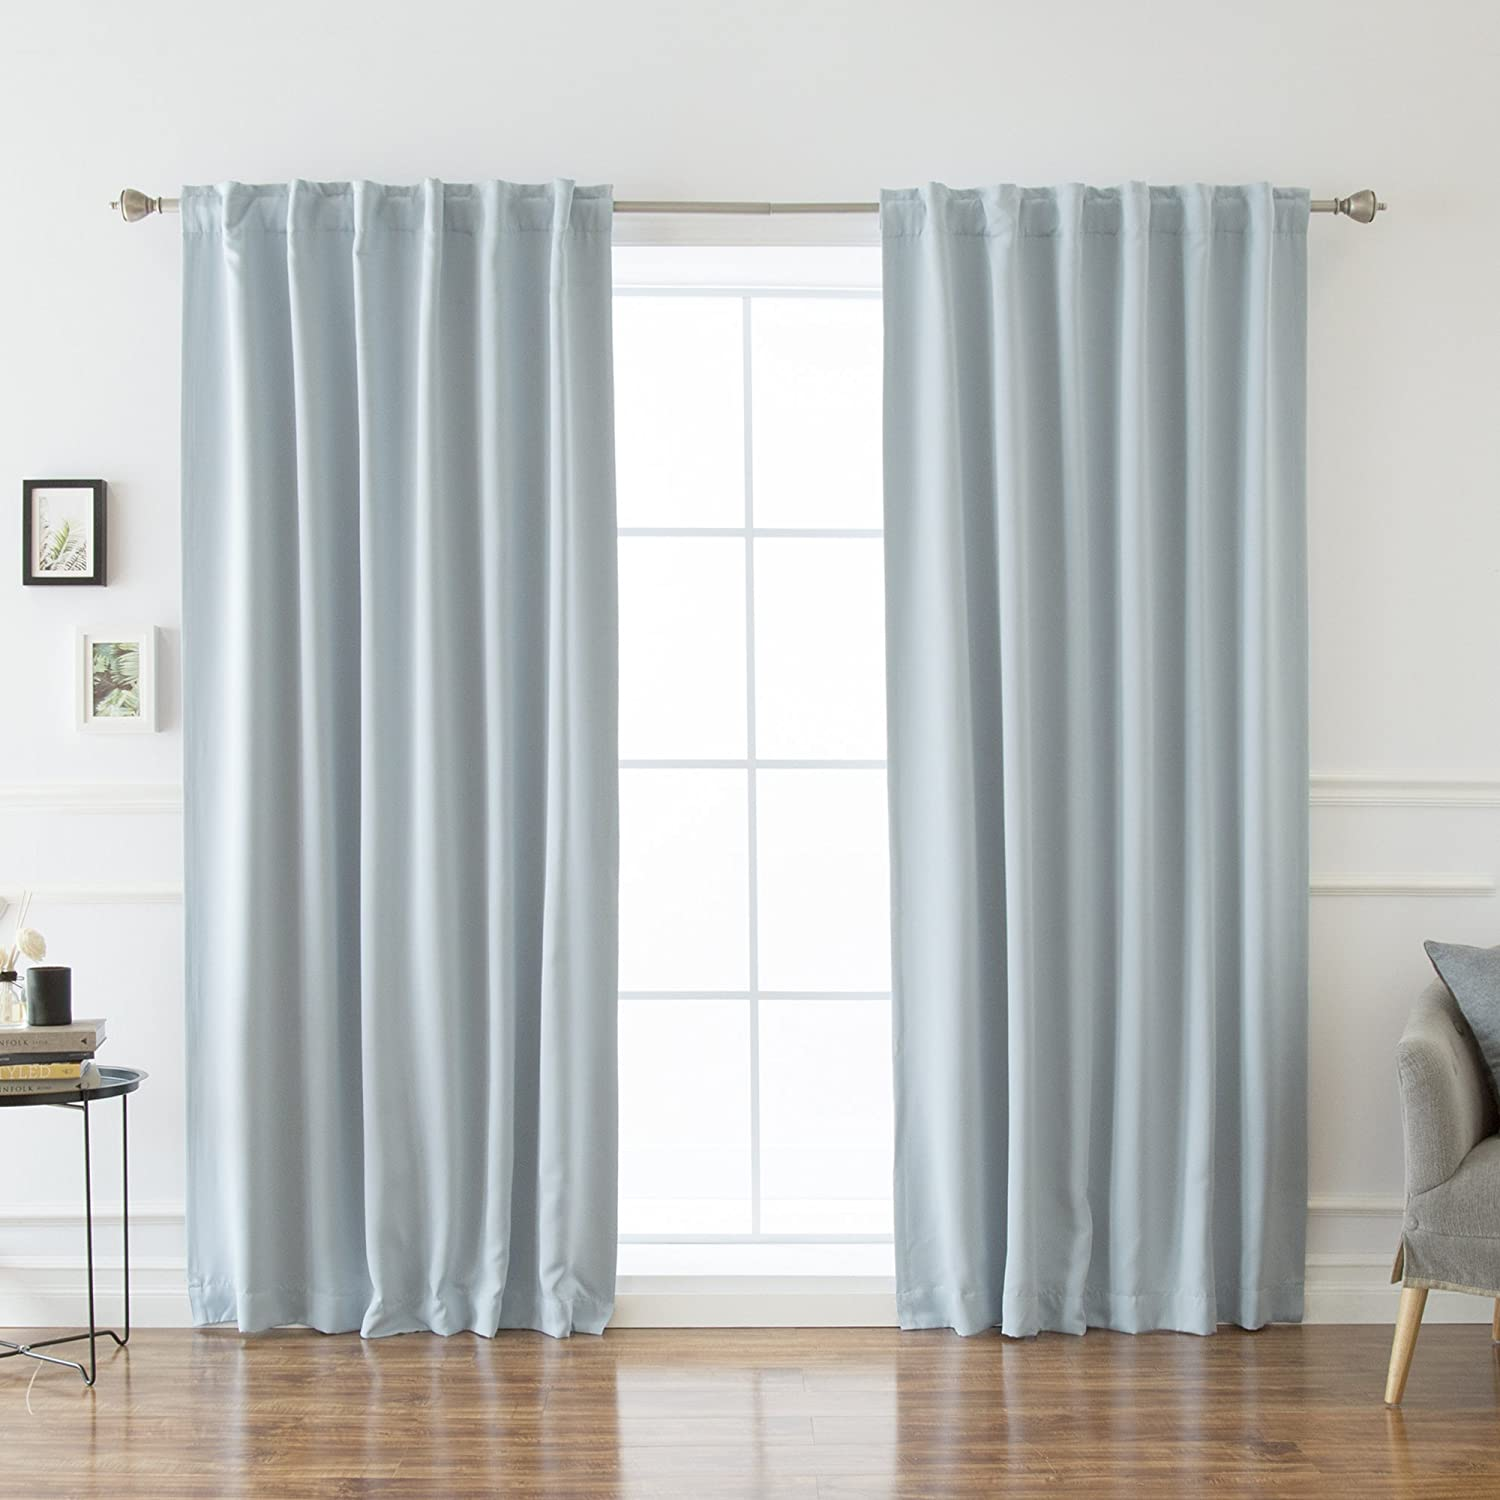 Best Home Fashion Premium Thermal Insulated Blackout Curtains - Back Tab/Rod Pocket - Sky Blue - 52